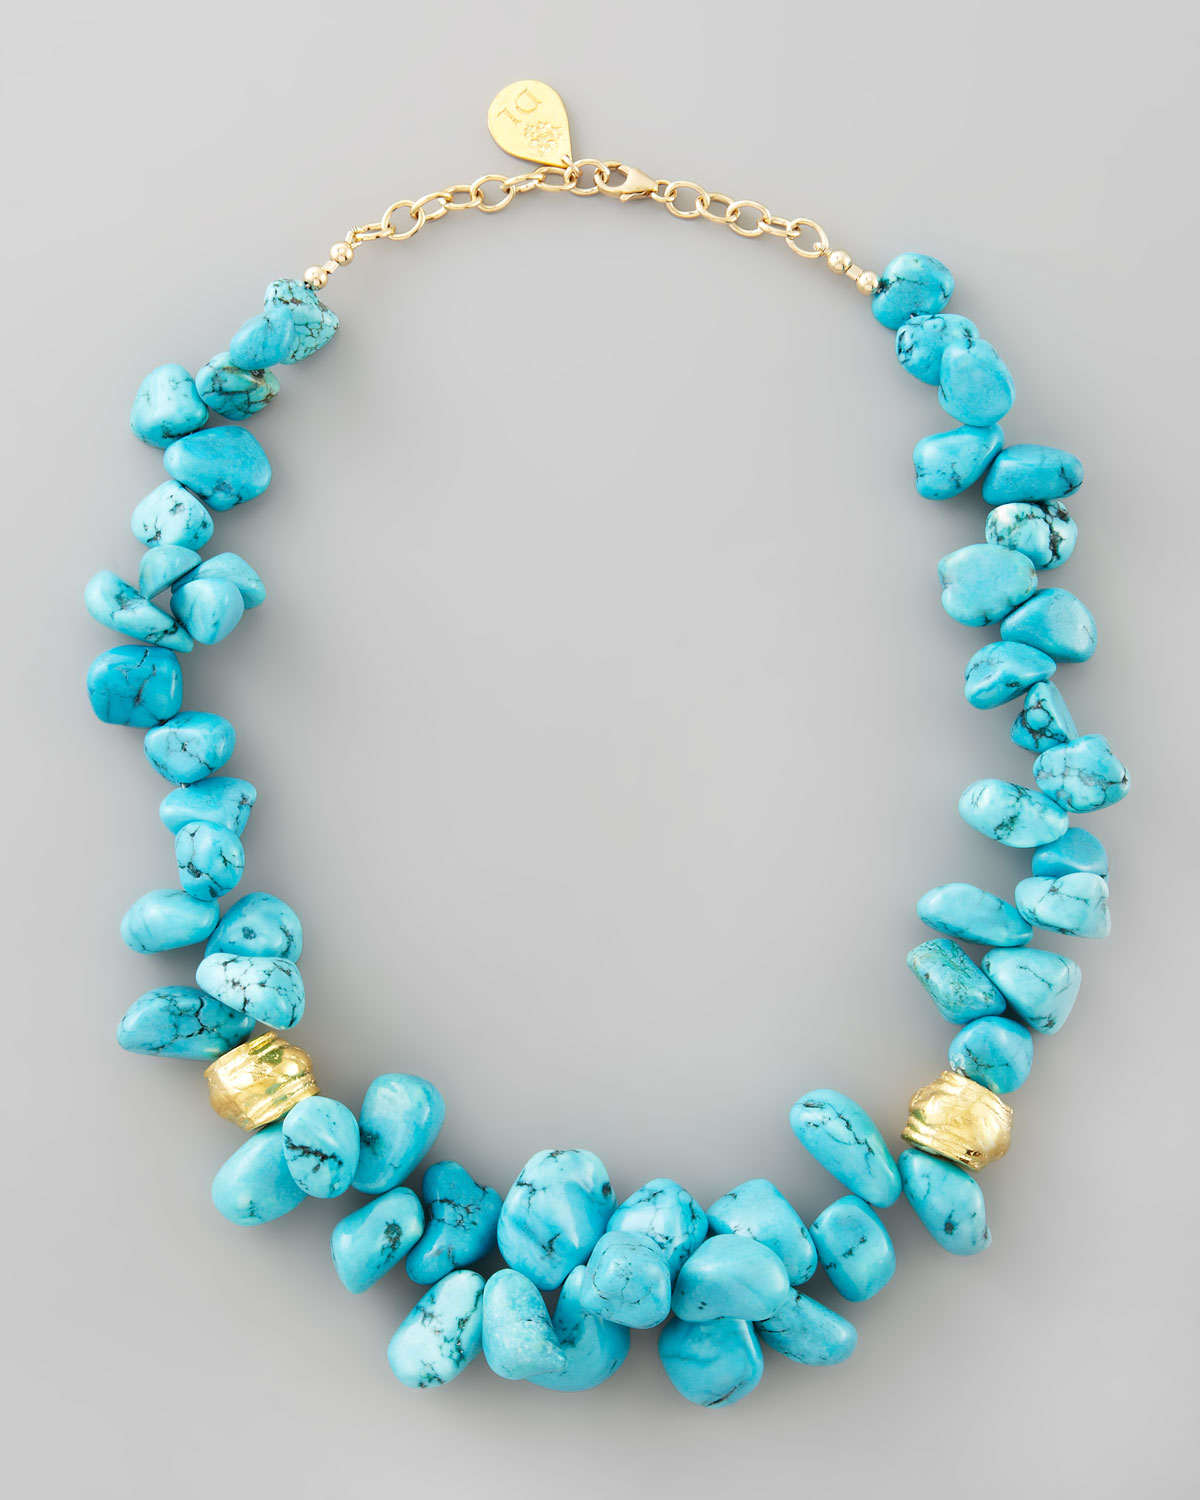 Necklace Beads: Devon Leigh Turquoise Cluster Beaded Necklace In Blue